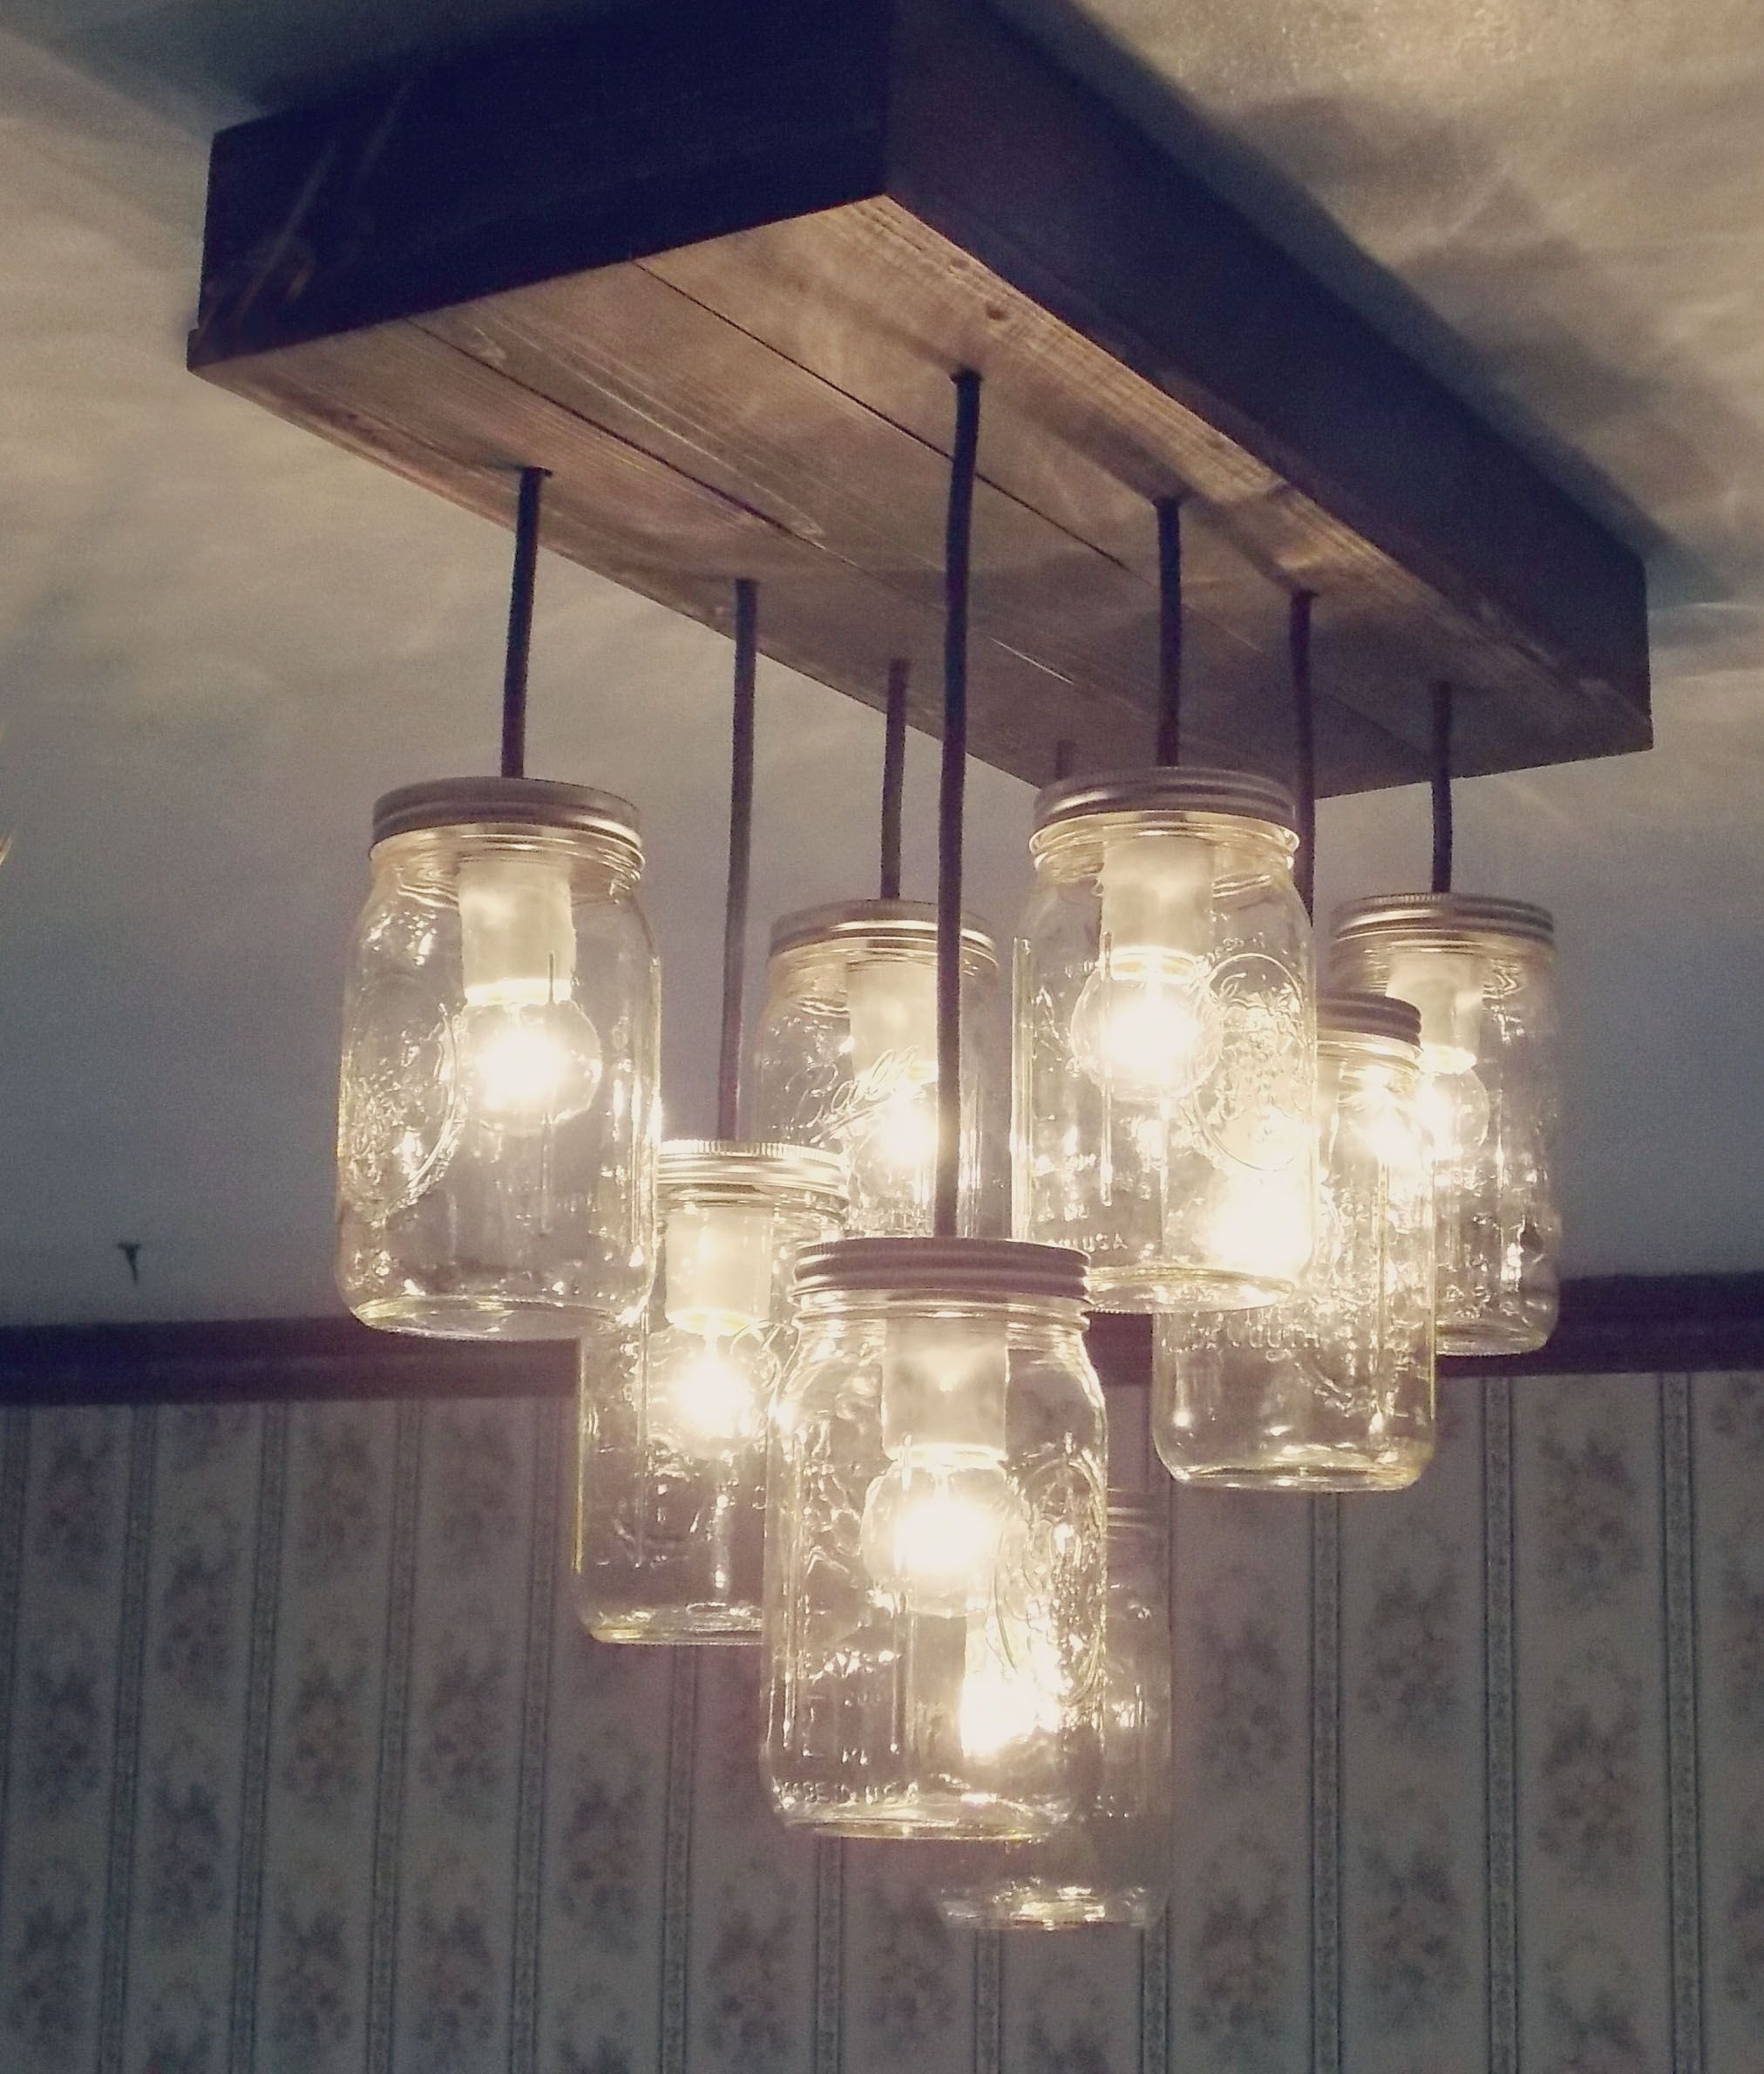 Lighting kitchen dining room lamp luminaire in chandeliers from lights - This Is A Beautiful 8 Light Mason Jar Chandelier Perfect For Kitchen Lighting Or Dining